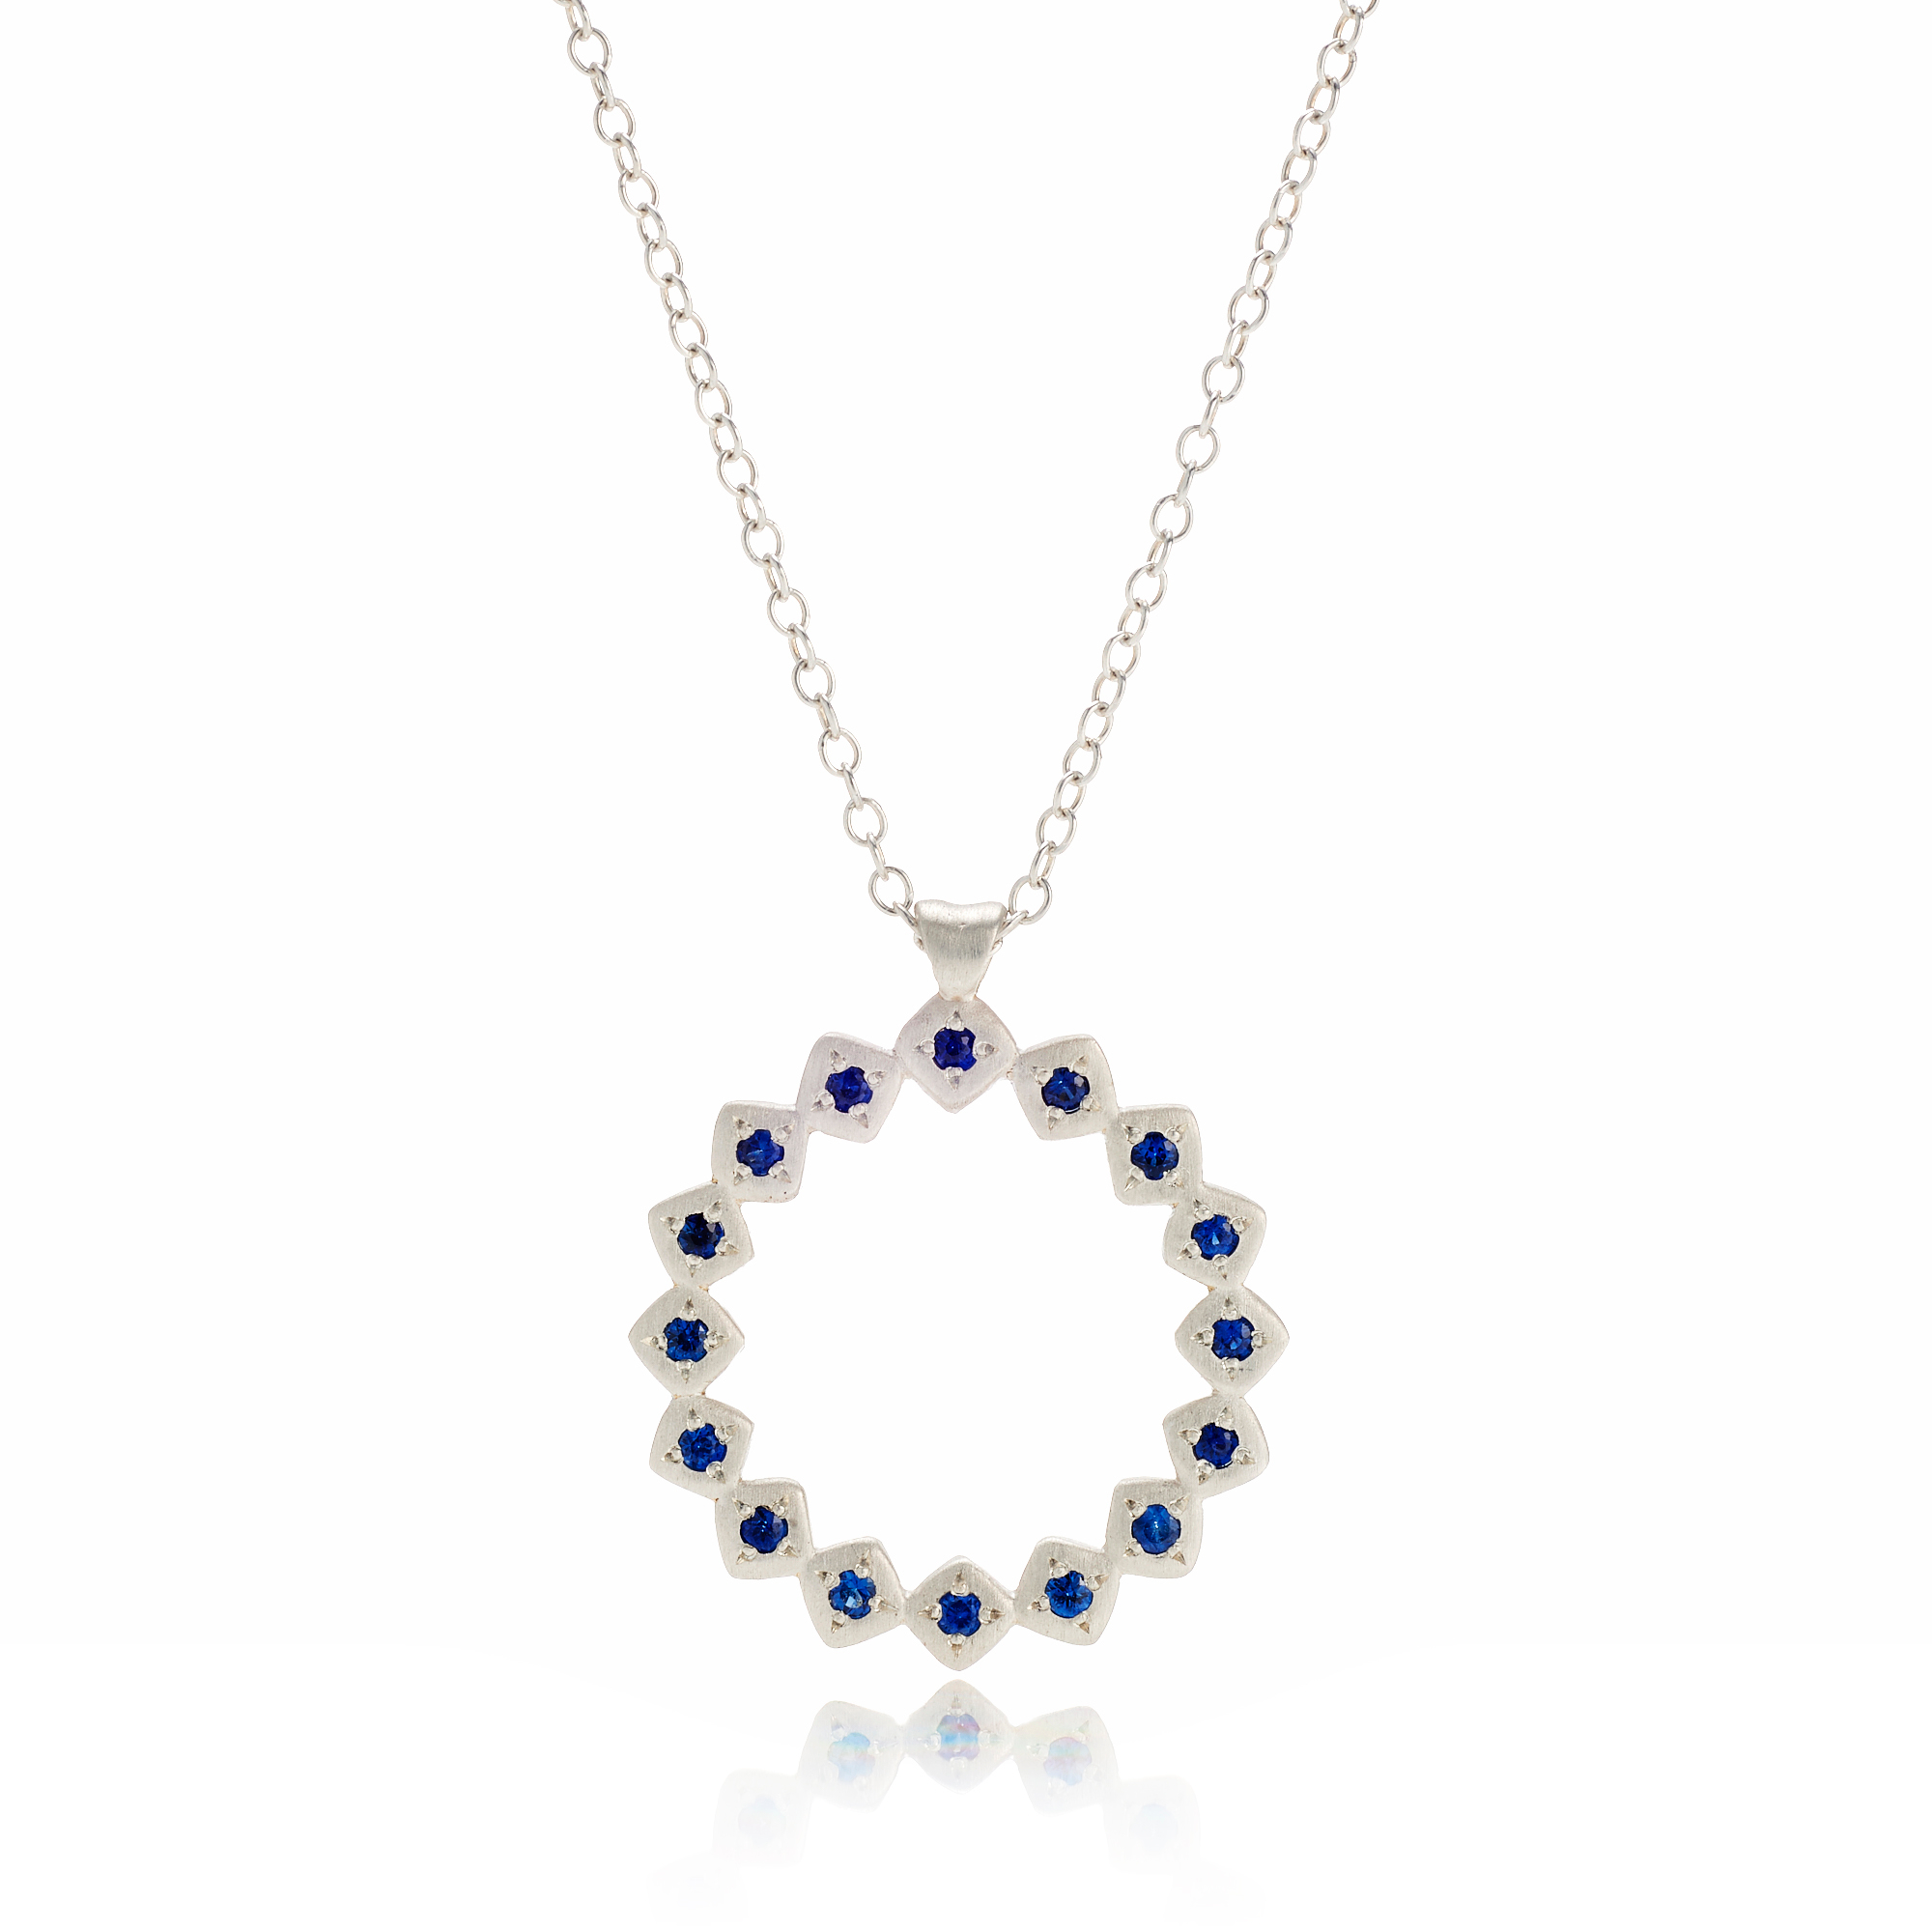 Adel Chefridi Constellation Open Circle Sapphire Necklace